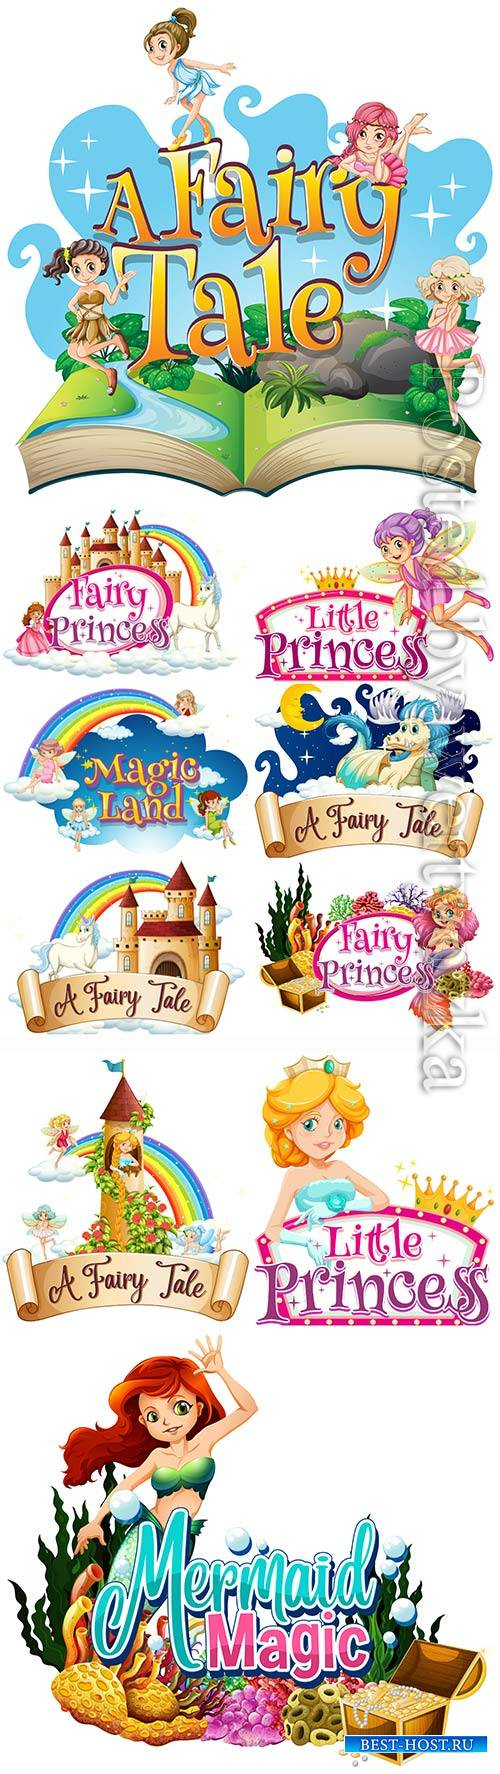 Fairy tale characters vector illustration